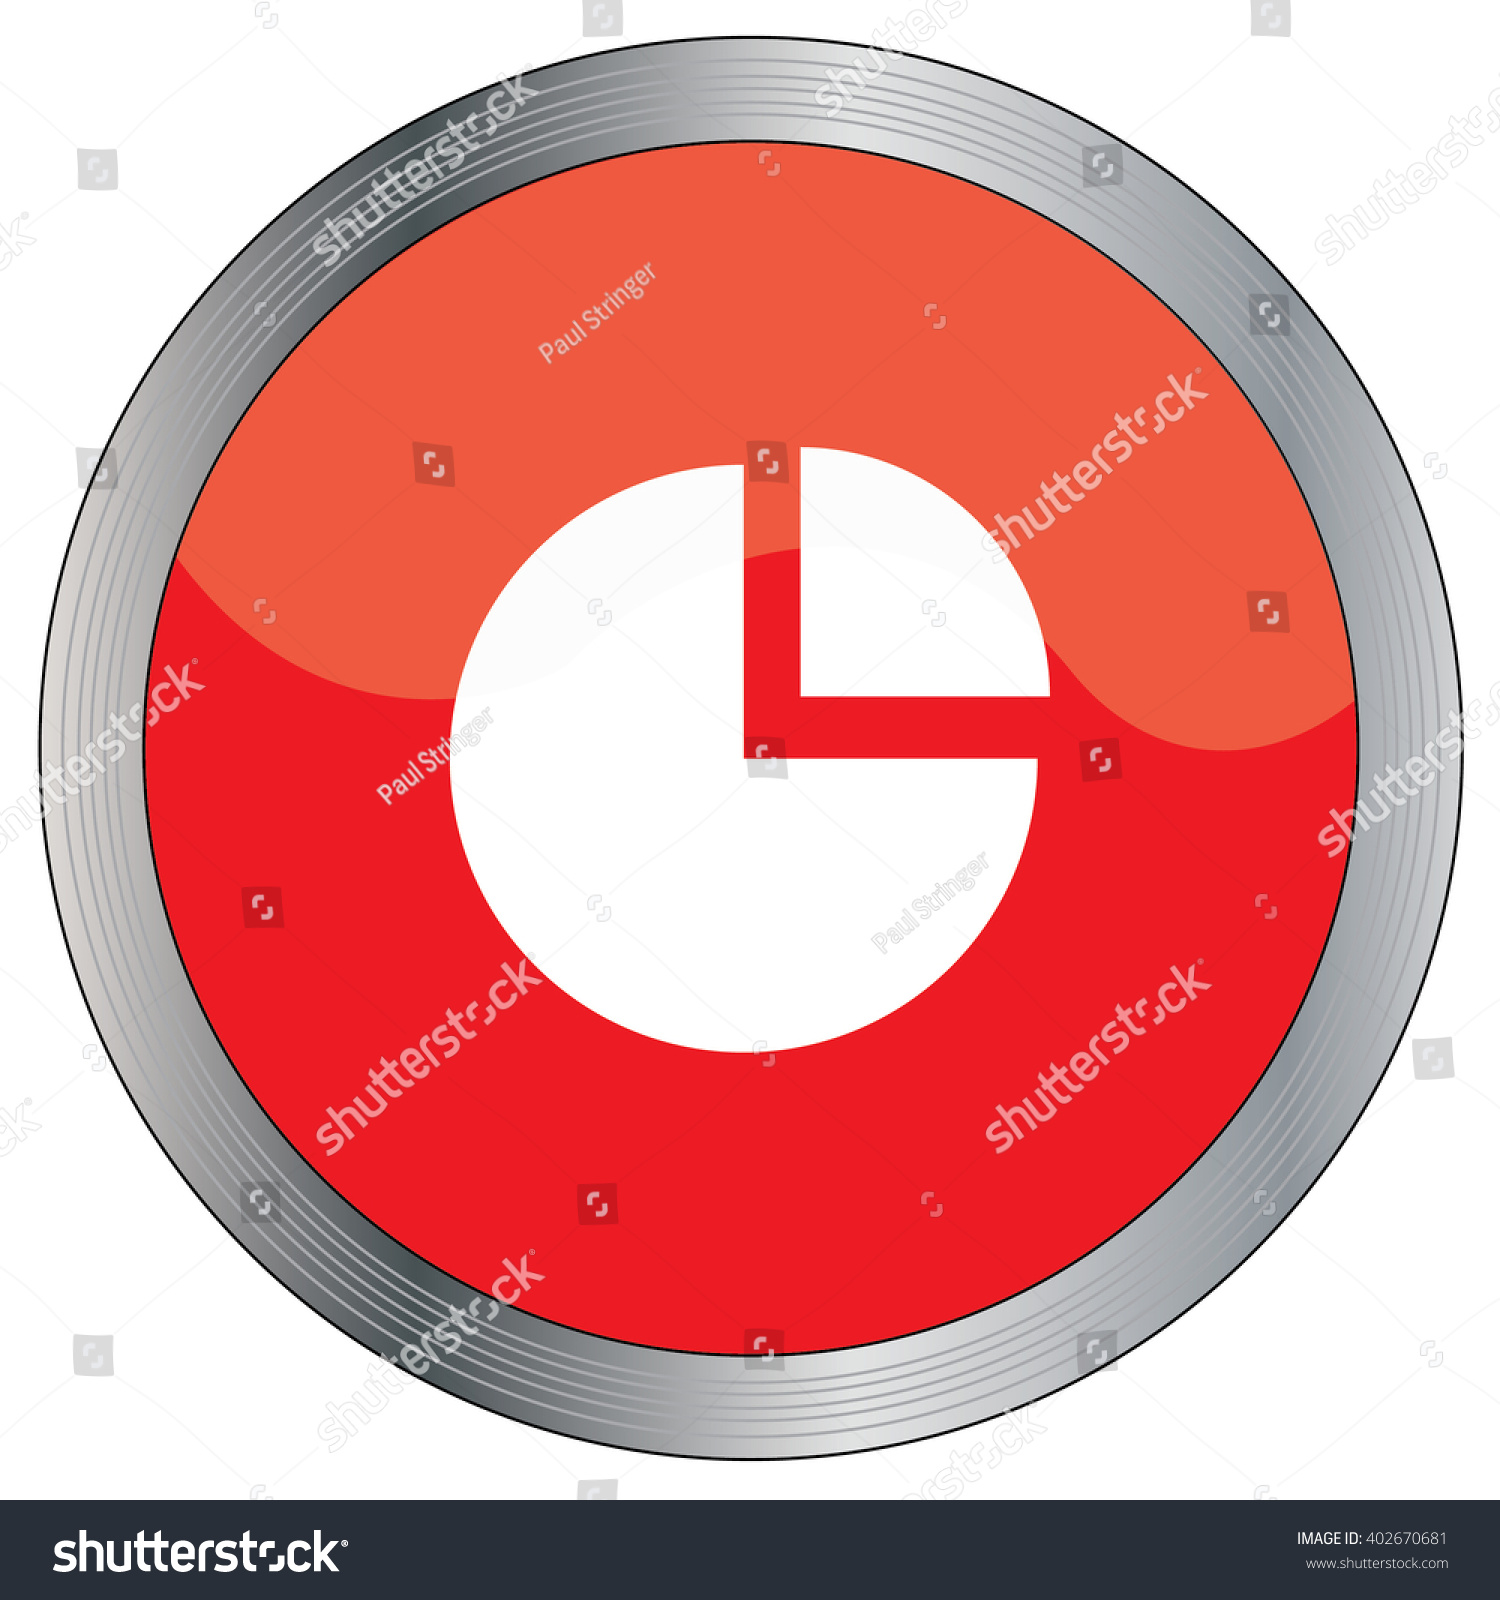 Icon illustration isolated on background pie stock illustration an icon illustration isolated on a background pie chart exploded nvjuhfo Image collections